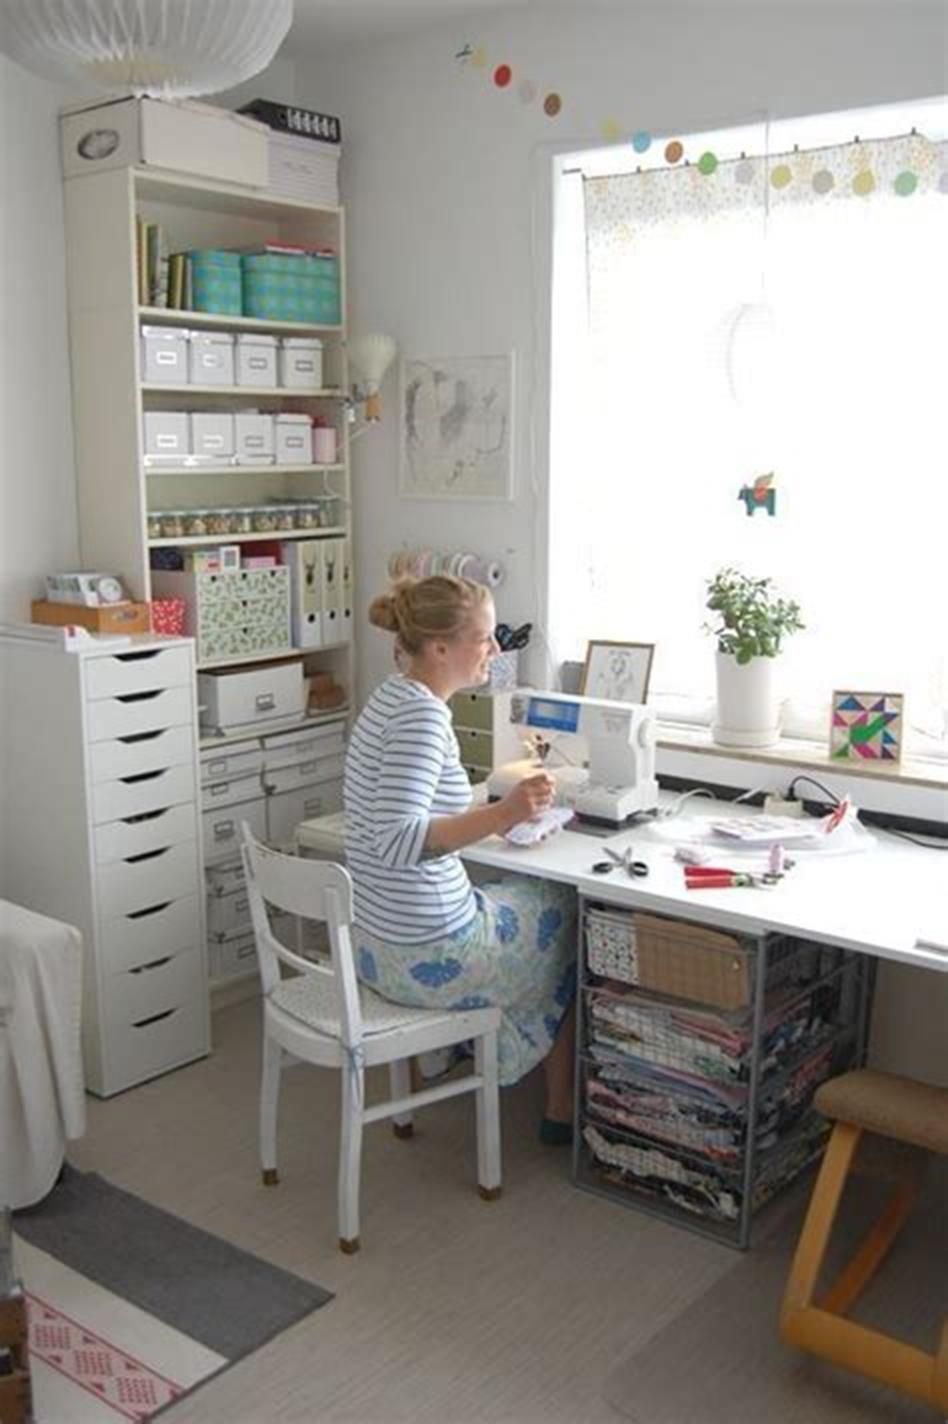 40+ Best Small Craft Room and Sewing Room Design Ideas On a Budget images